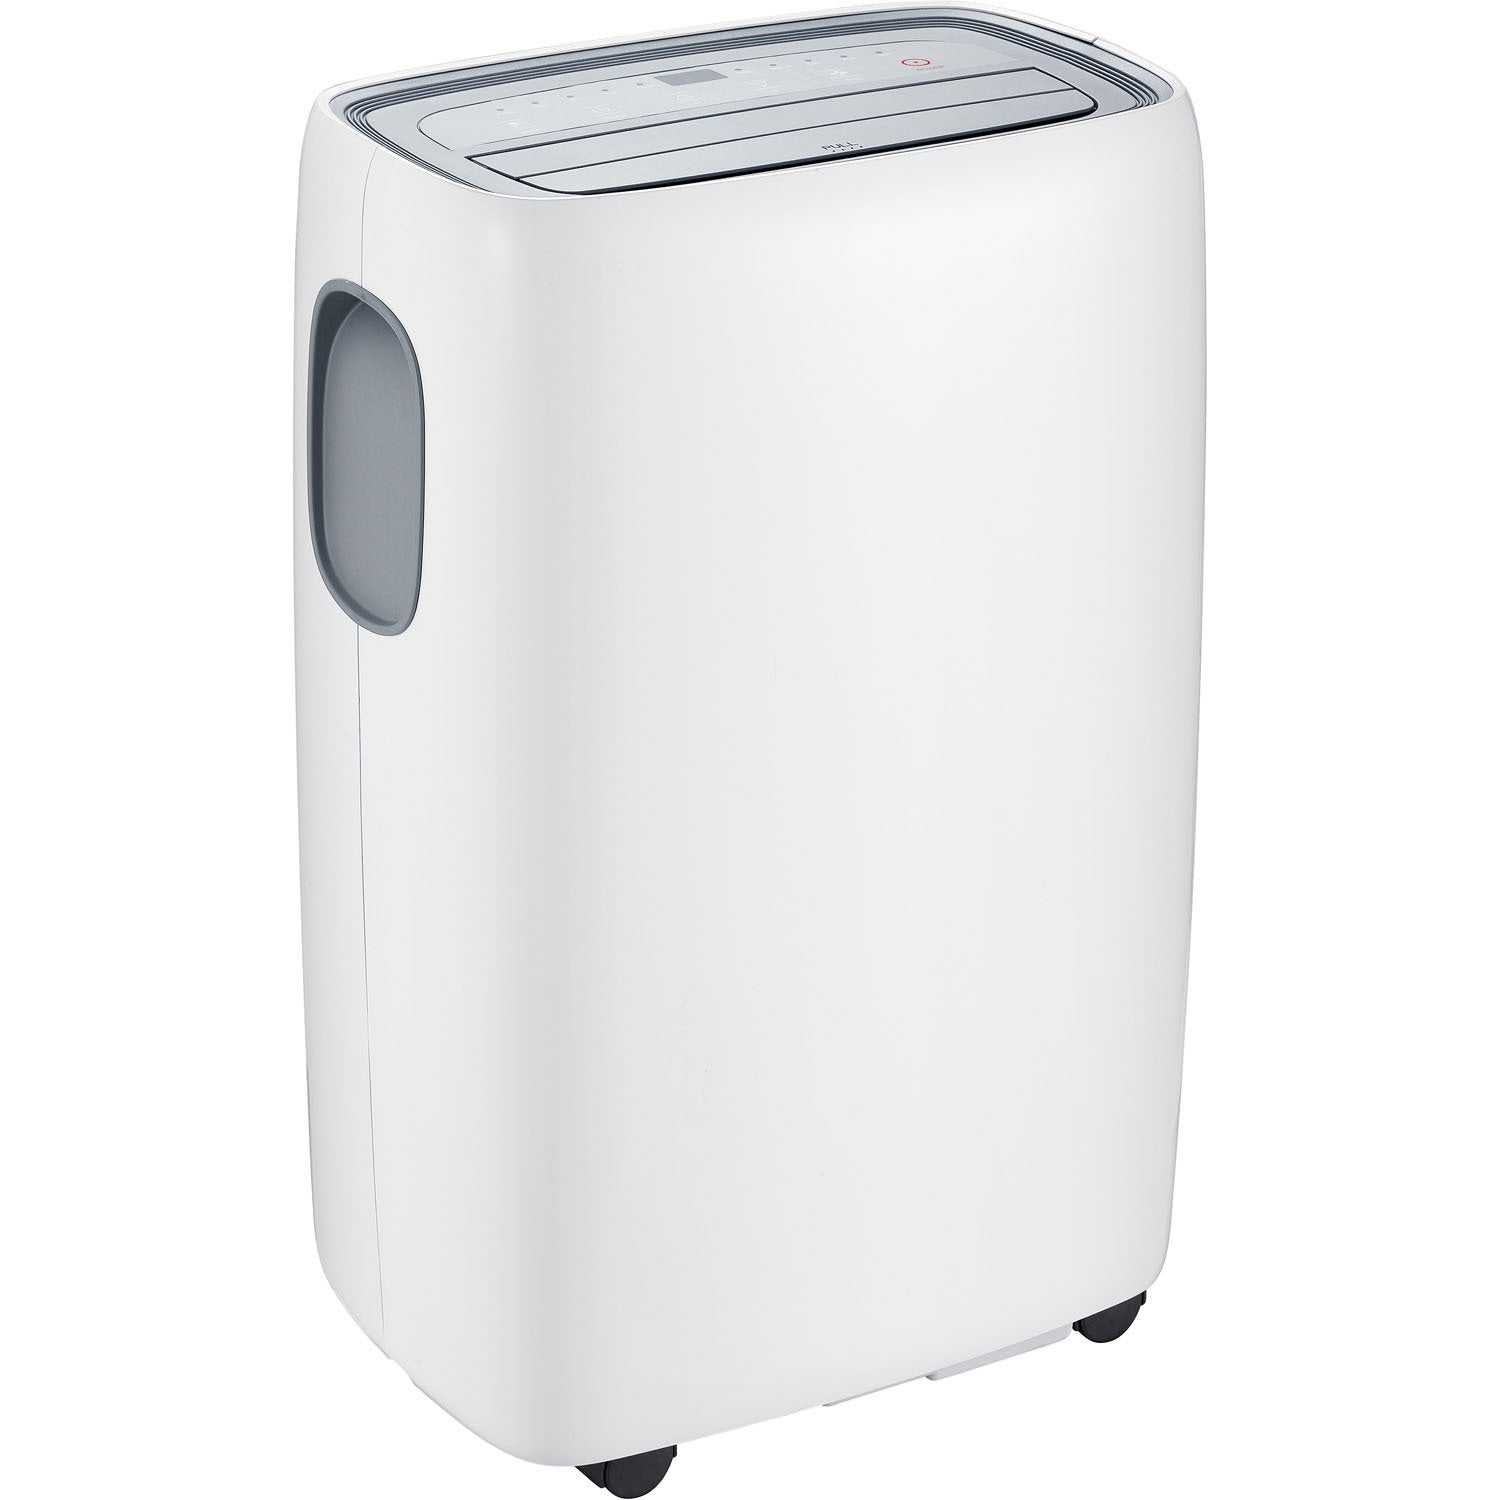 TCL 8,000 BTU Portable Air Conditioner (White)